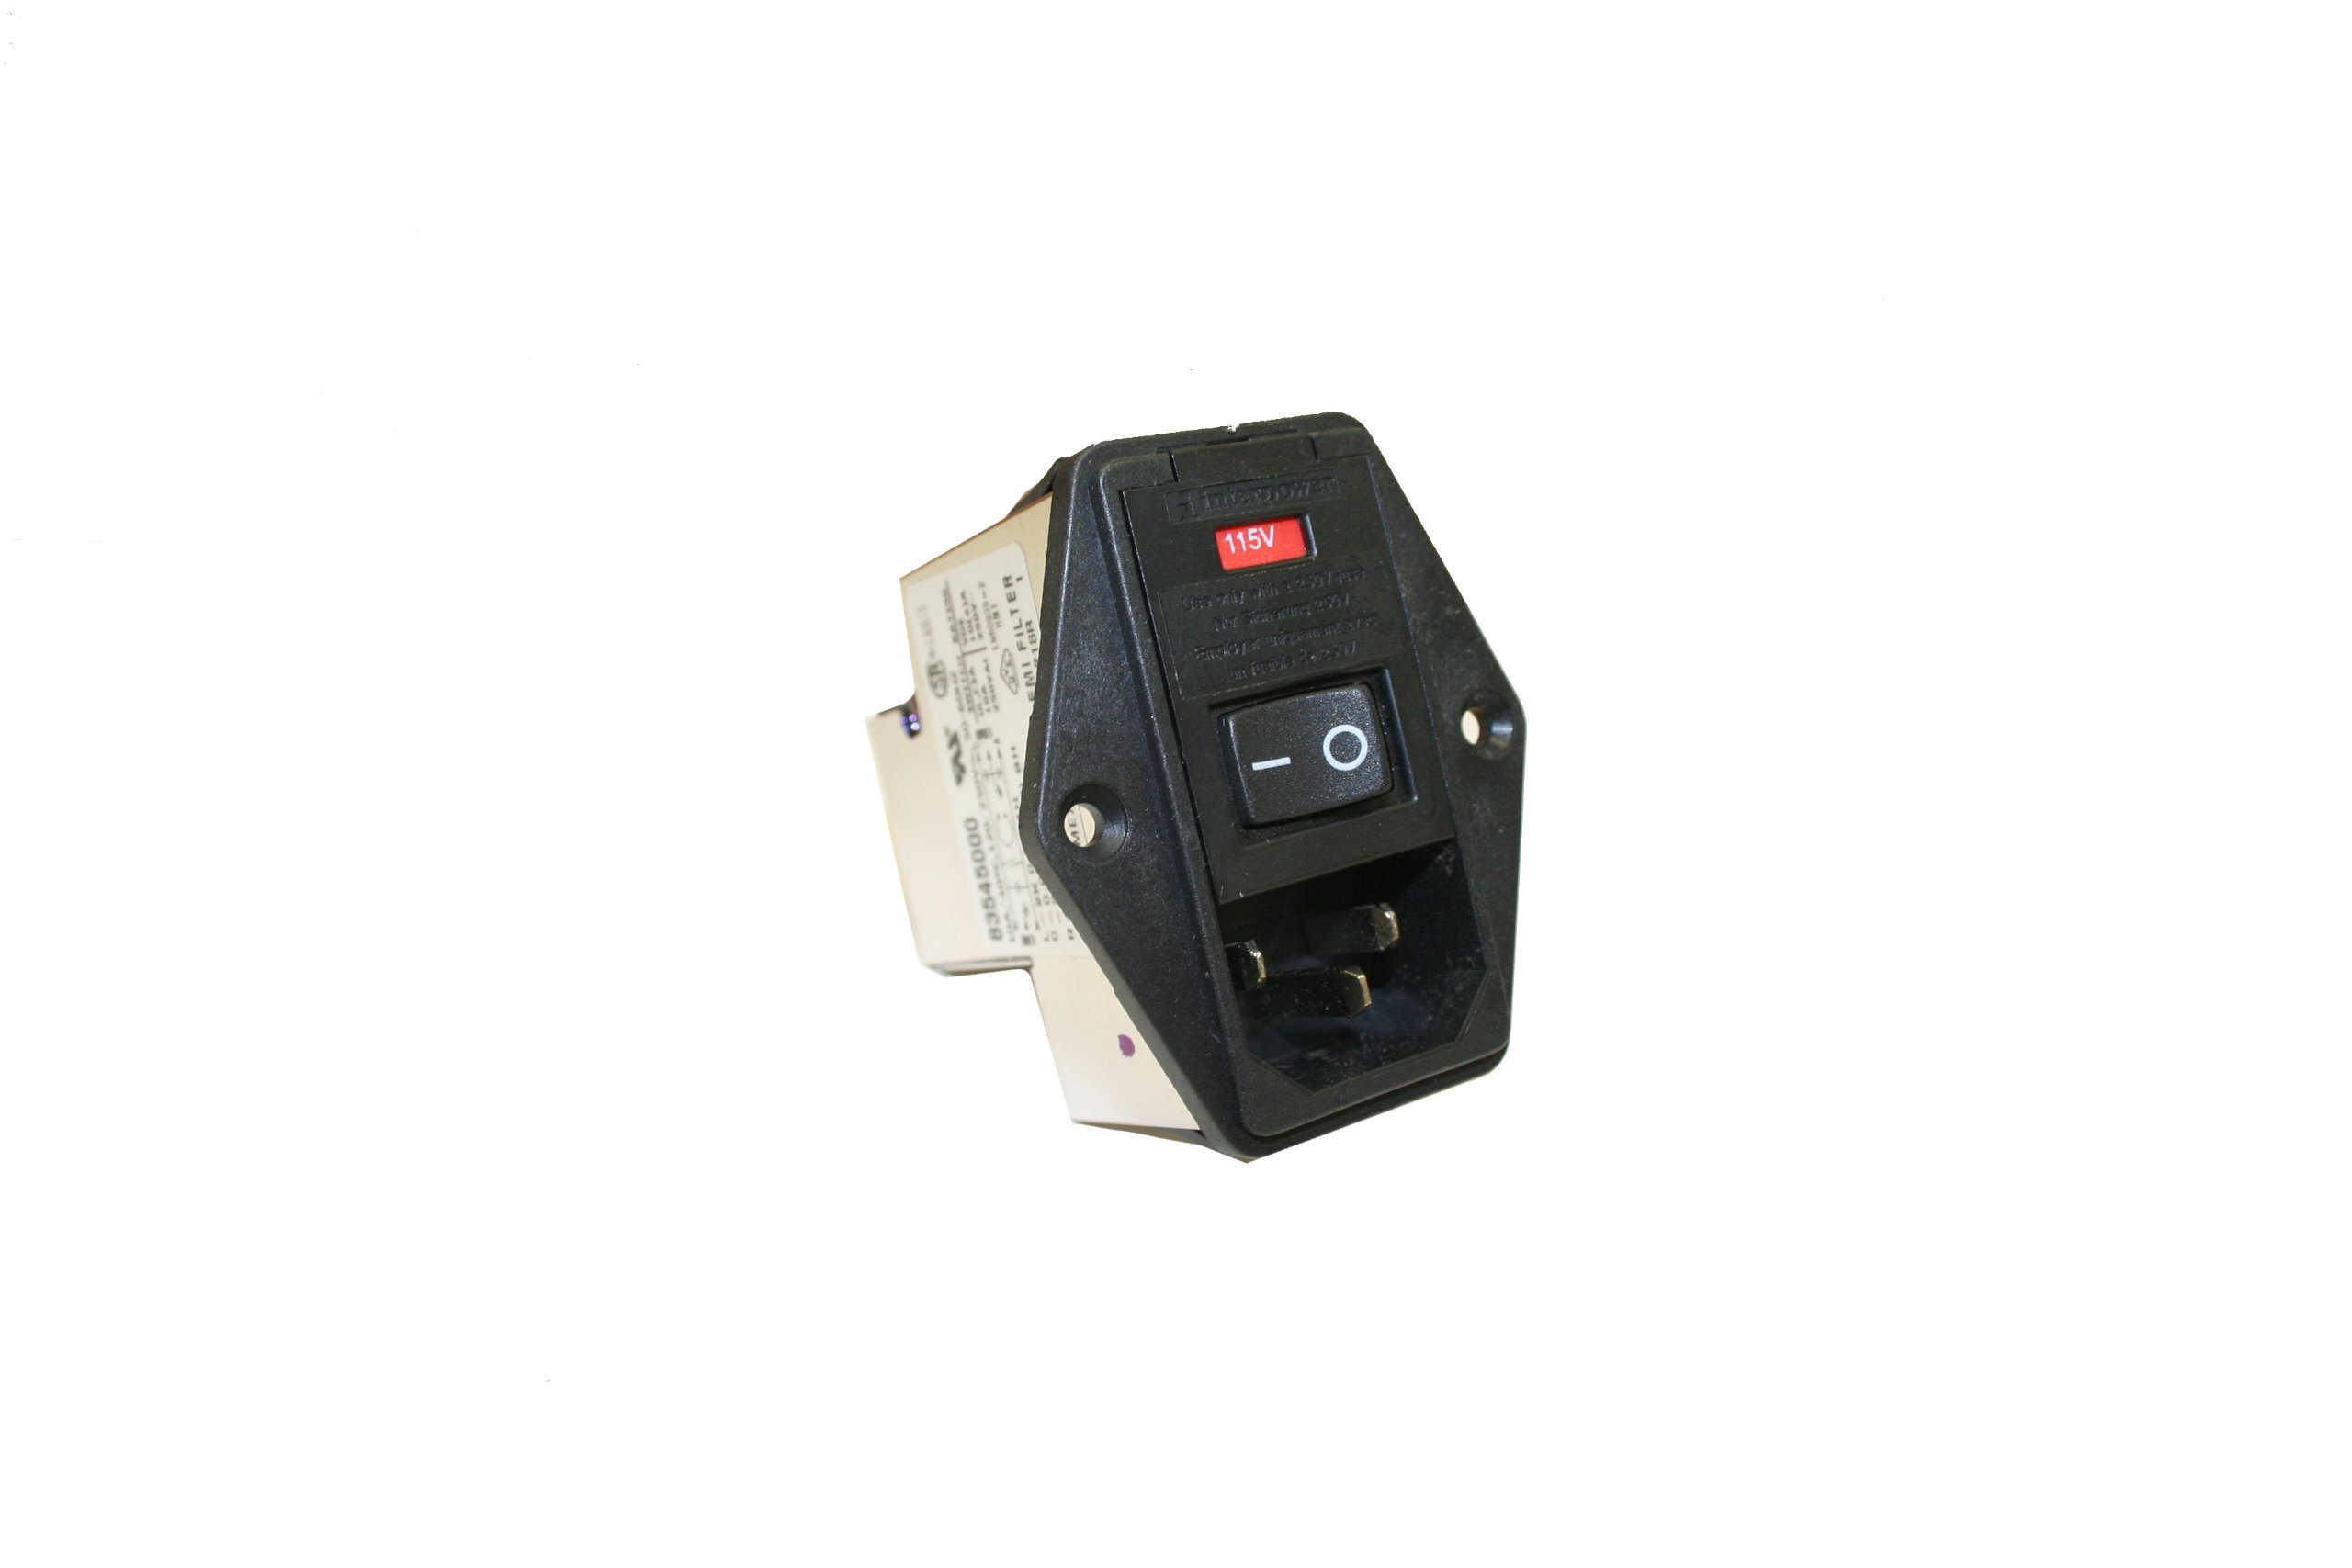 Interpower 83545000 Five Function Screw Mount Module, C14 Inlet, Switch, Single Fused, Voltage Selector, Filter, 10A Current Rating, 120/250VAC Voltage Rating